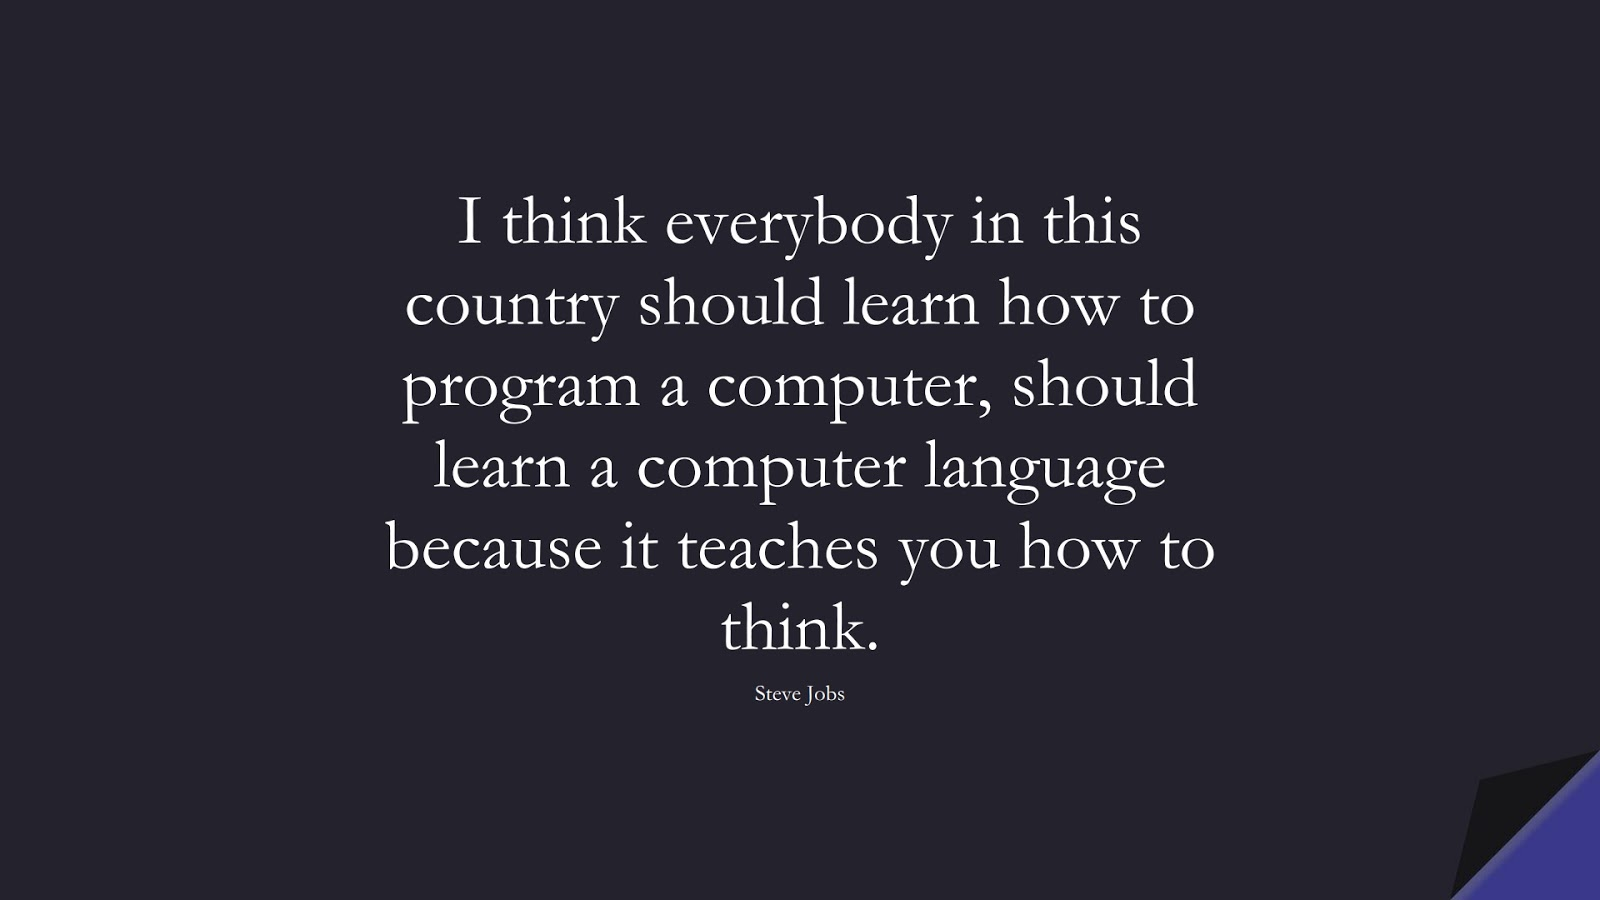 I think everybody in this country should learn how to program a computer, should learn a computer language because it teaches you how to think. (Steve Jobs);  #SteveJobsQuotes